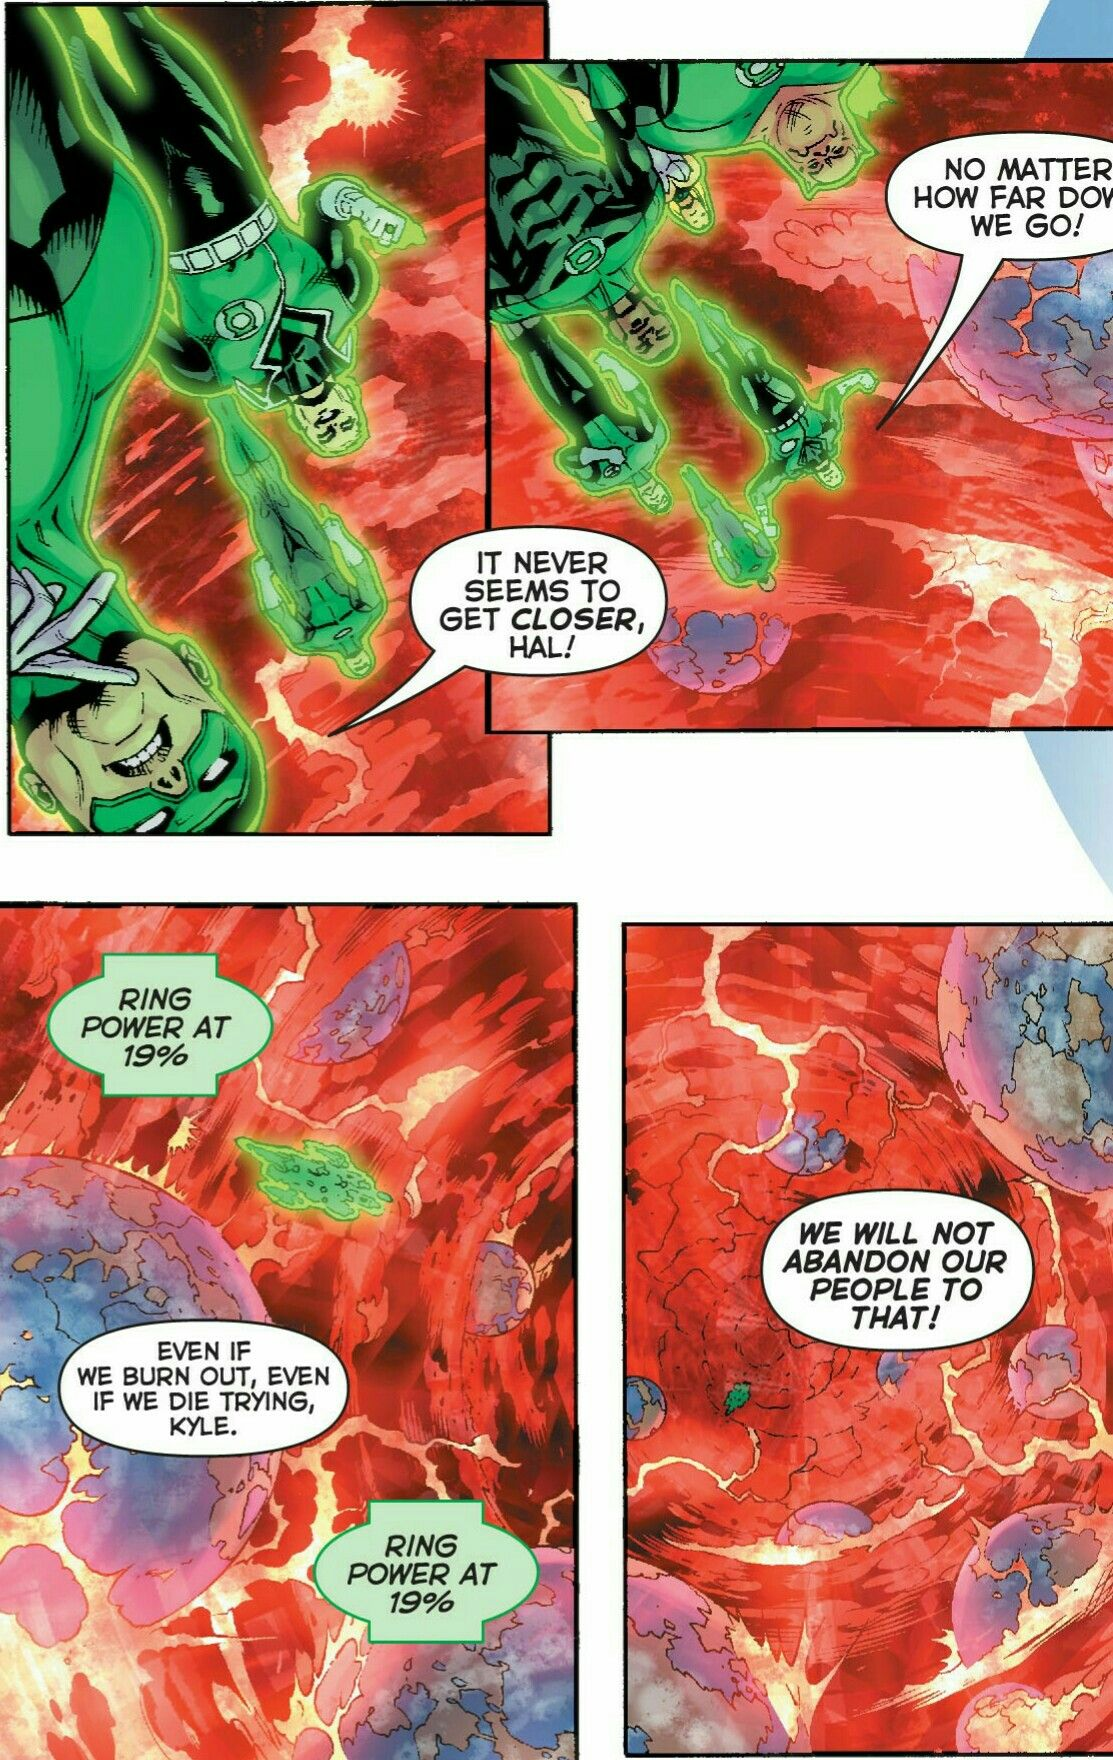 Green Lantern Corps trying to save the Multiverse during Final Crisis